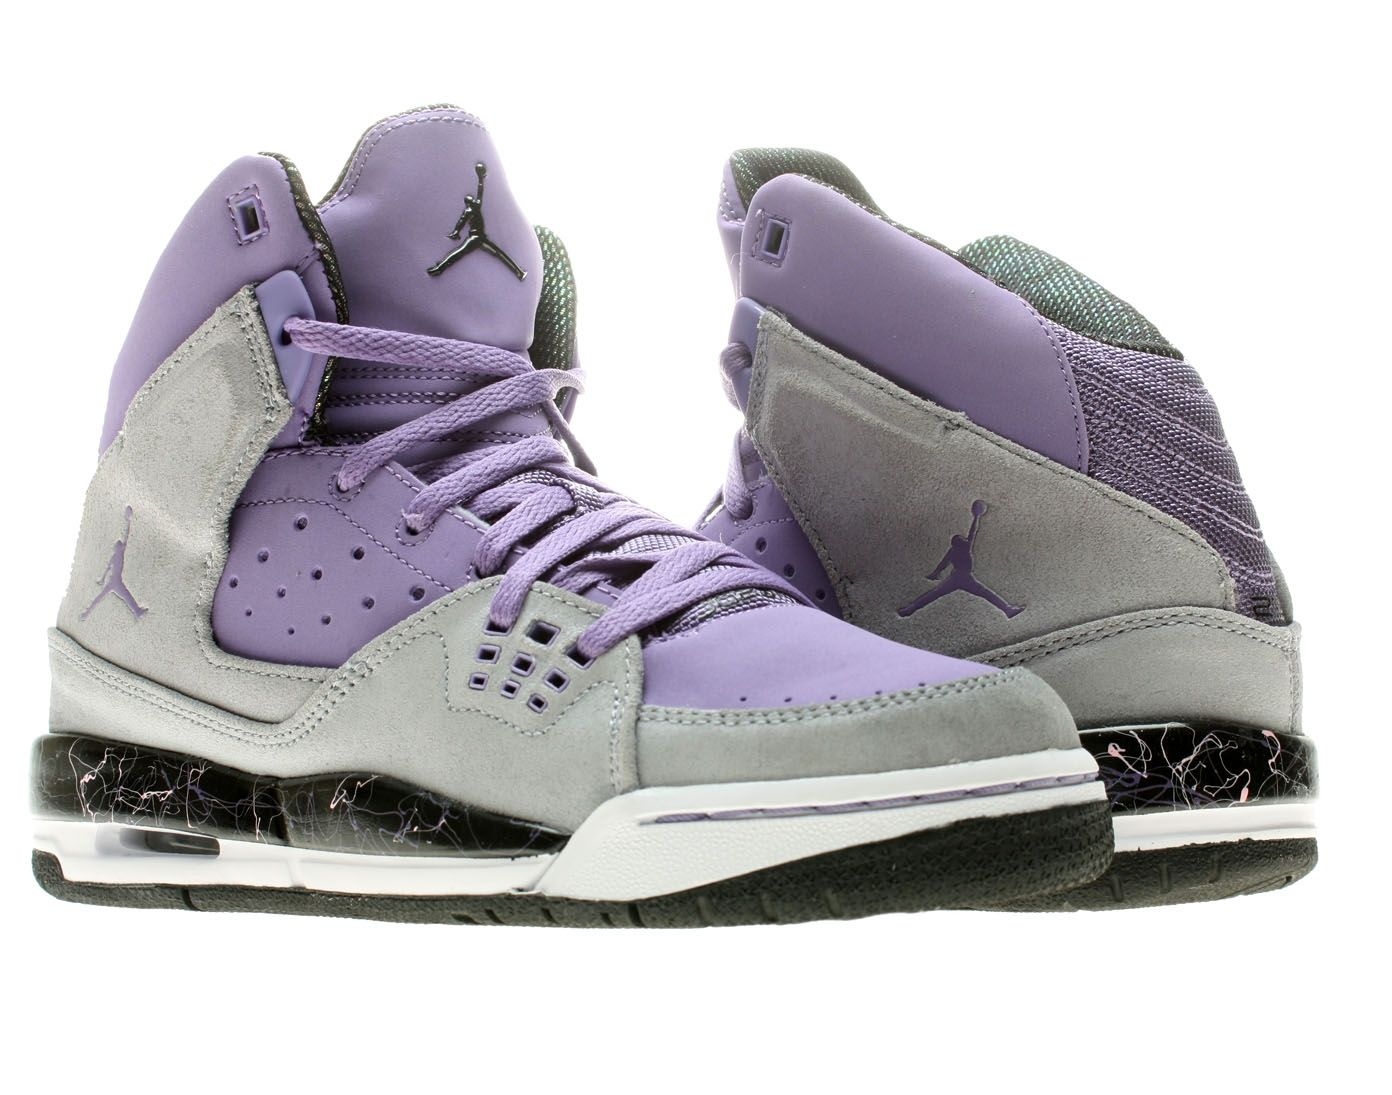 nike jordan shoes for girls | Nike Air Jordan SC-1 (GS) Girls